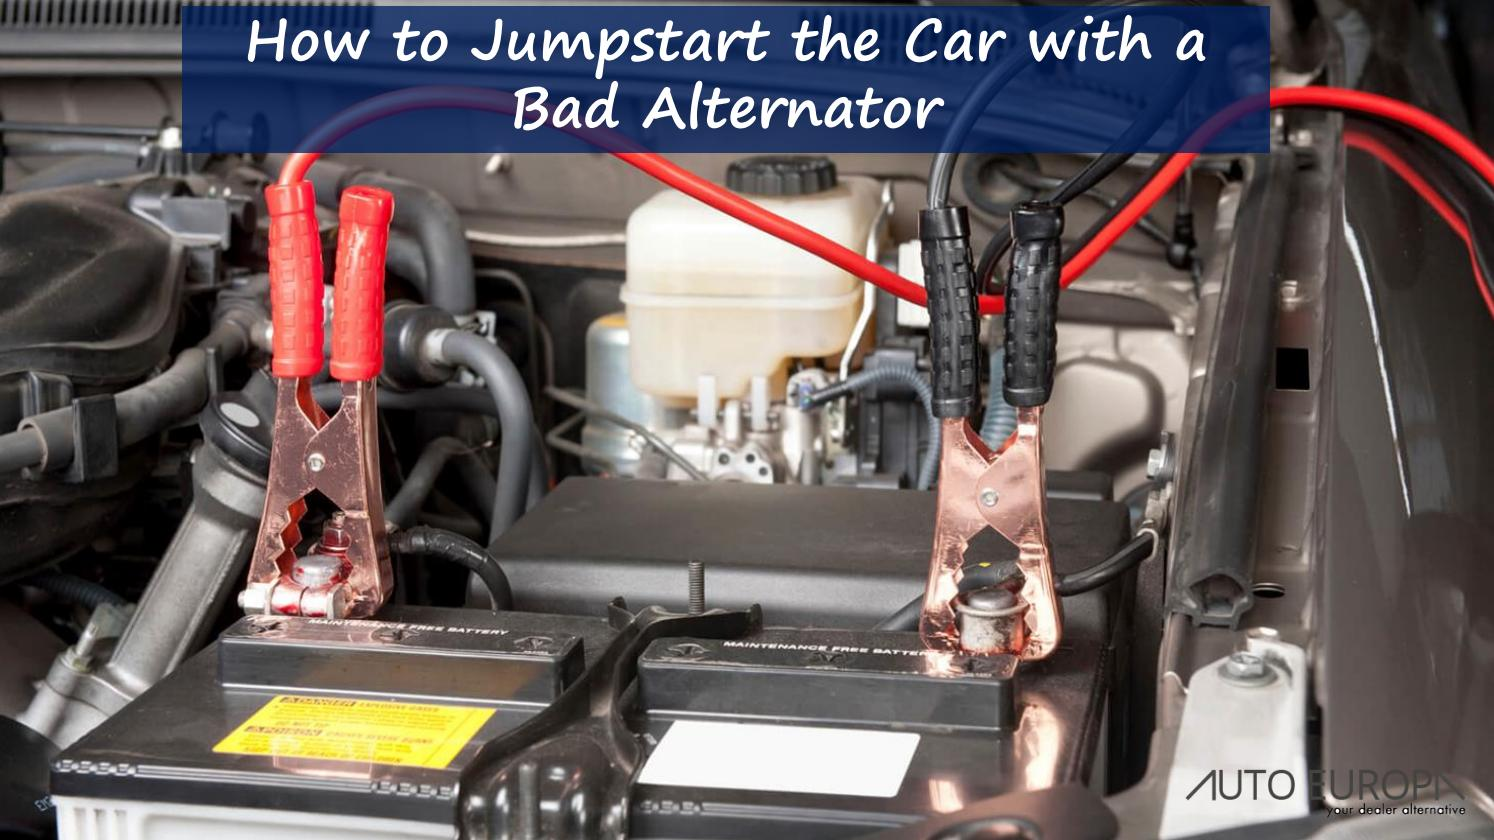 Can You Jumpstart A Car With A Bad Alternator >> How To Jumpstart The Car With A Bad Alternator By Auto